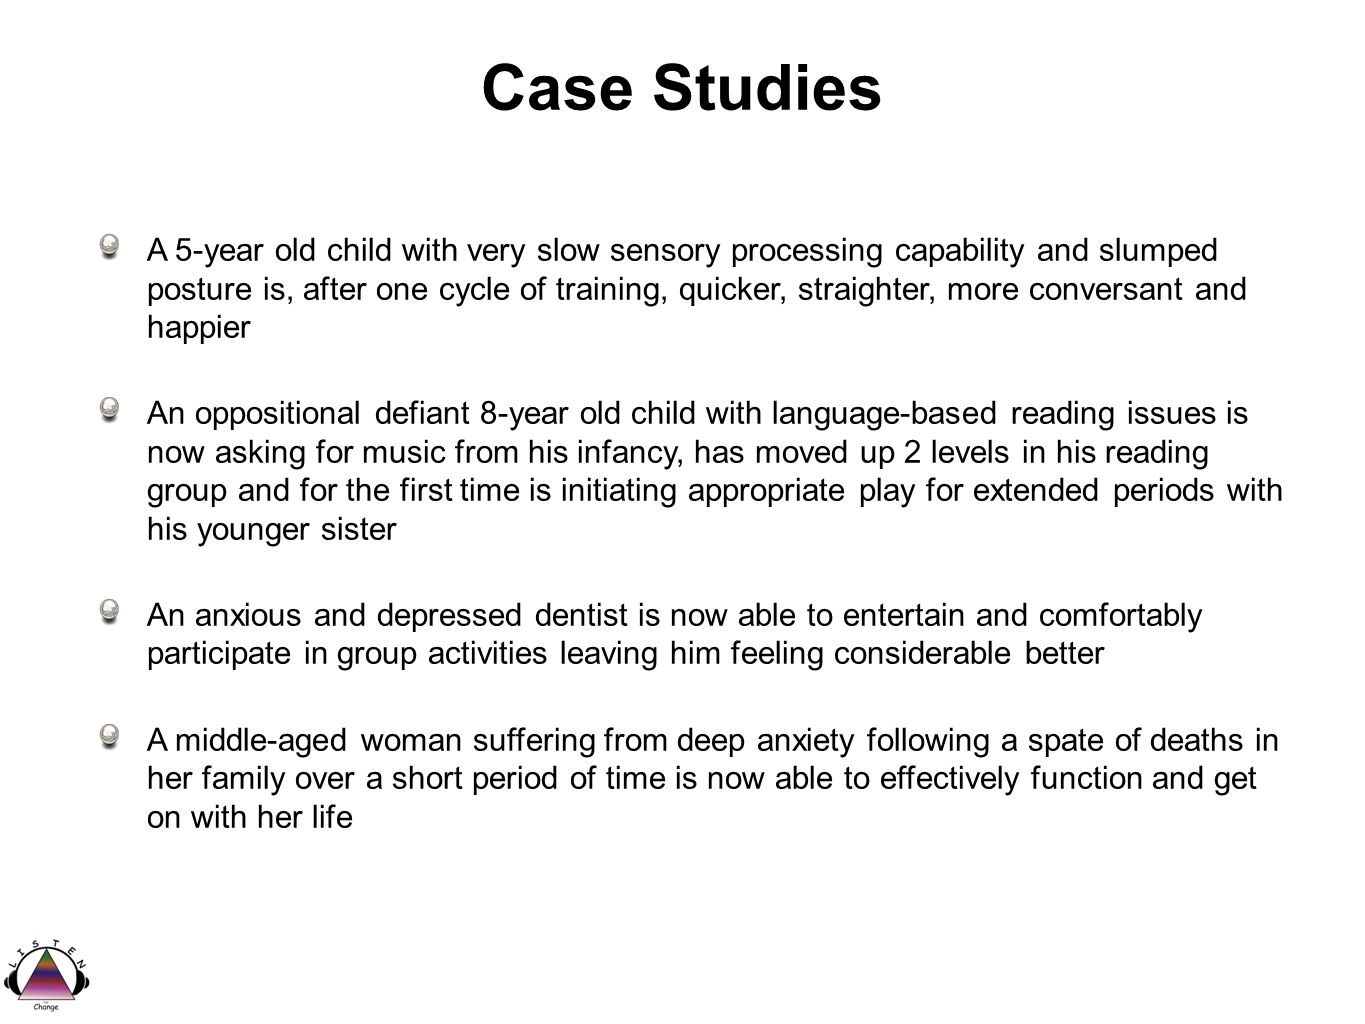 Case Studies A 5-year old child with very slow sensory processing capability and slumped posture is, after one cycle of training, quicker, straighter, more conversant and happier An oppositional defiant 8-year old child with language-based reading issues is now asking for music from his infancy, has moved up 2 levels in his reading group and for the first time is initiating appropriate play for extended periods with his younger sister An anxious and depressed dentist is now able to entertain and comfortably participate in group activities leaving him feeling considerable better A middle-aged woman suffering from deep anxiety following a spate of deaths in her family over a short period of time is now able to effectively function and get on with her life